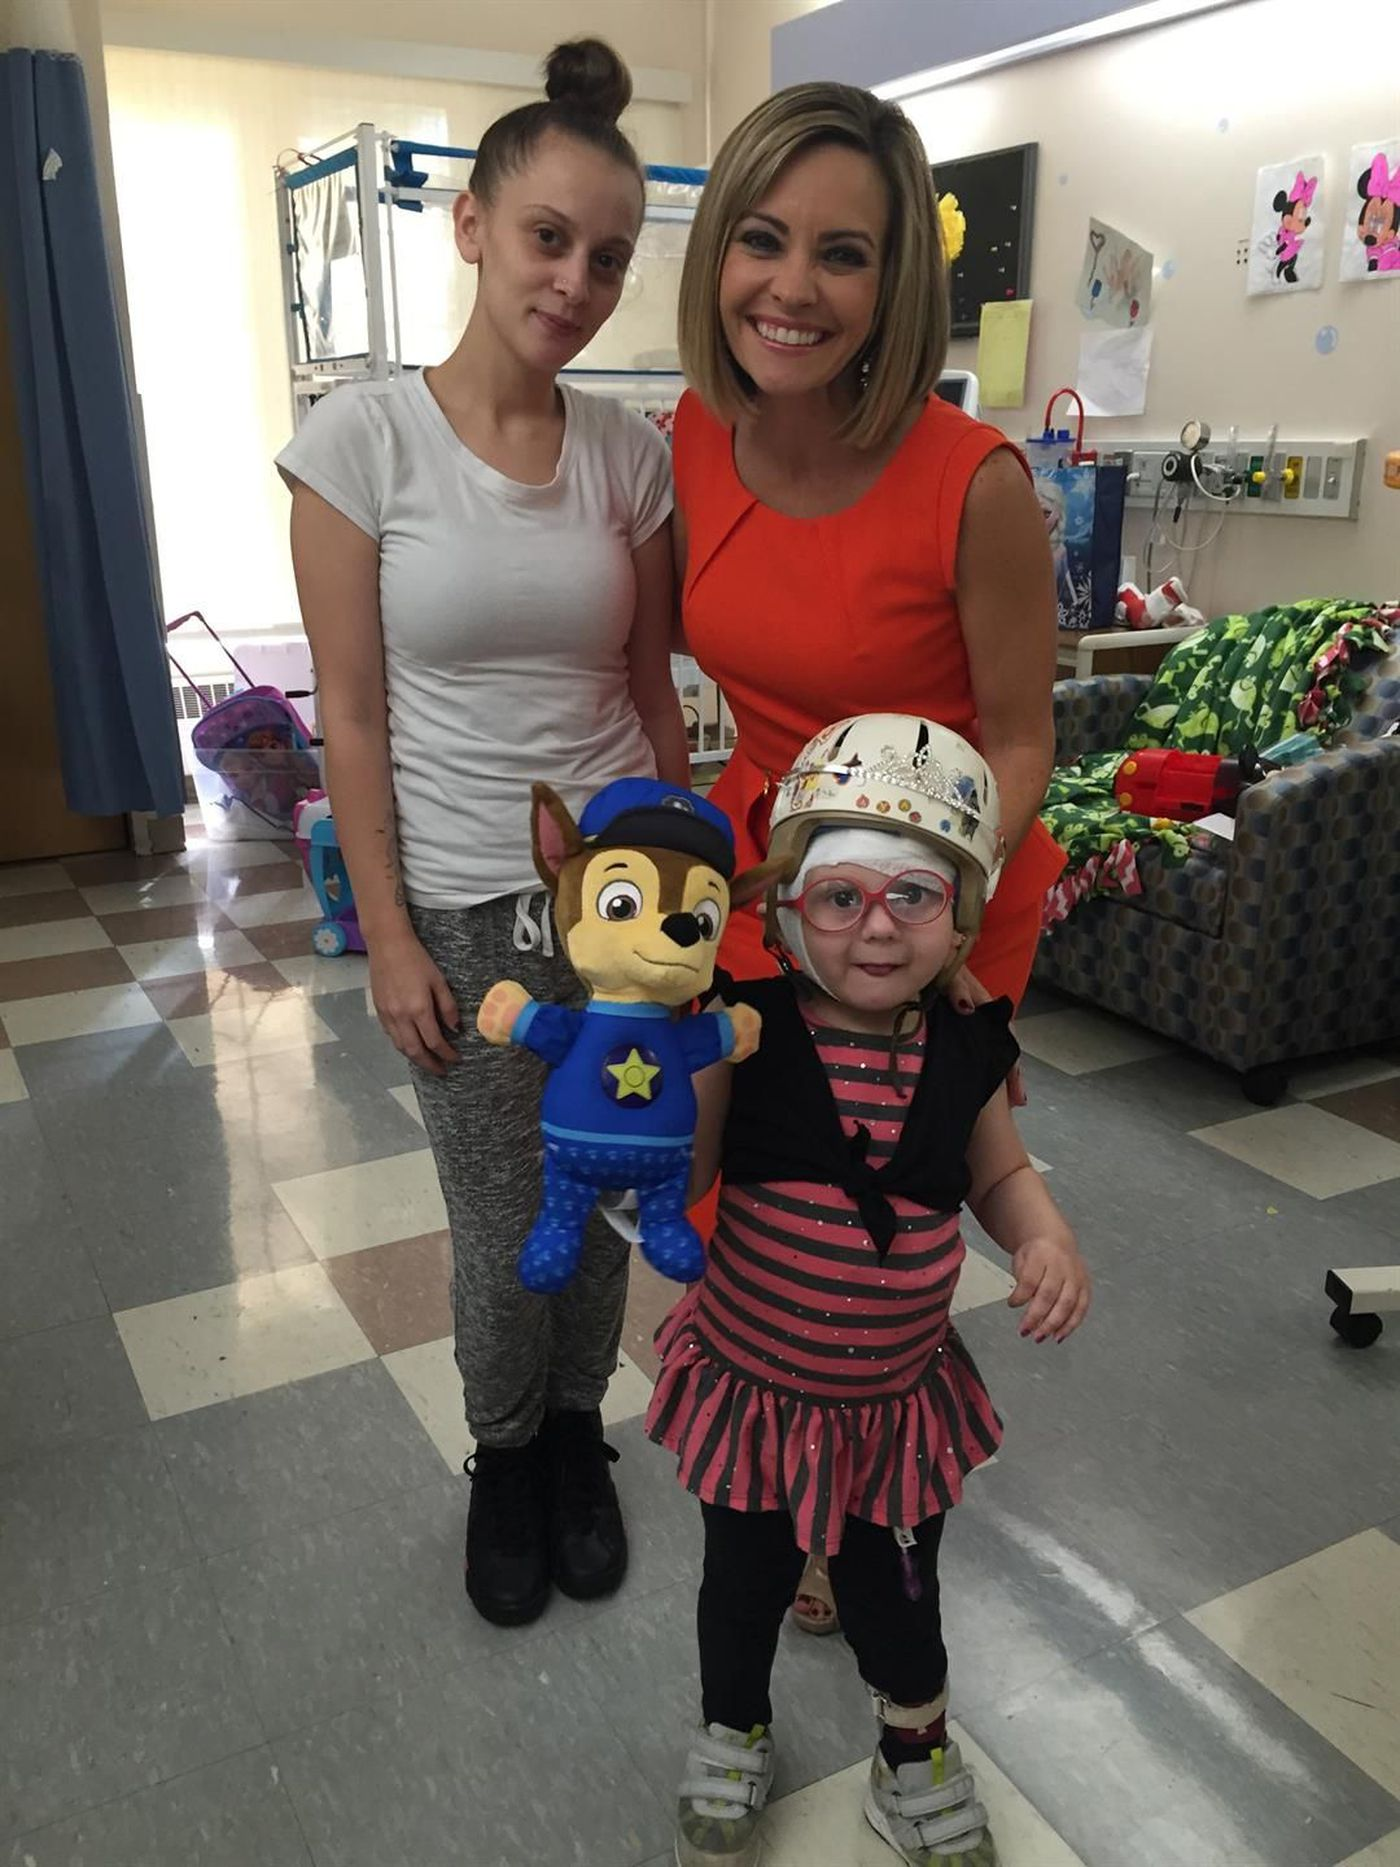 3-year-old shooting victim gets hospital room makeover